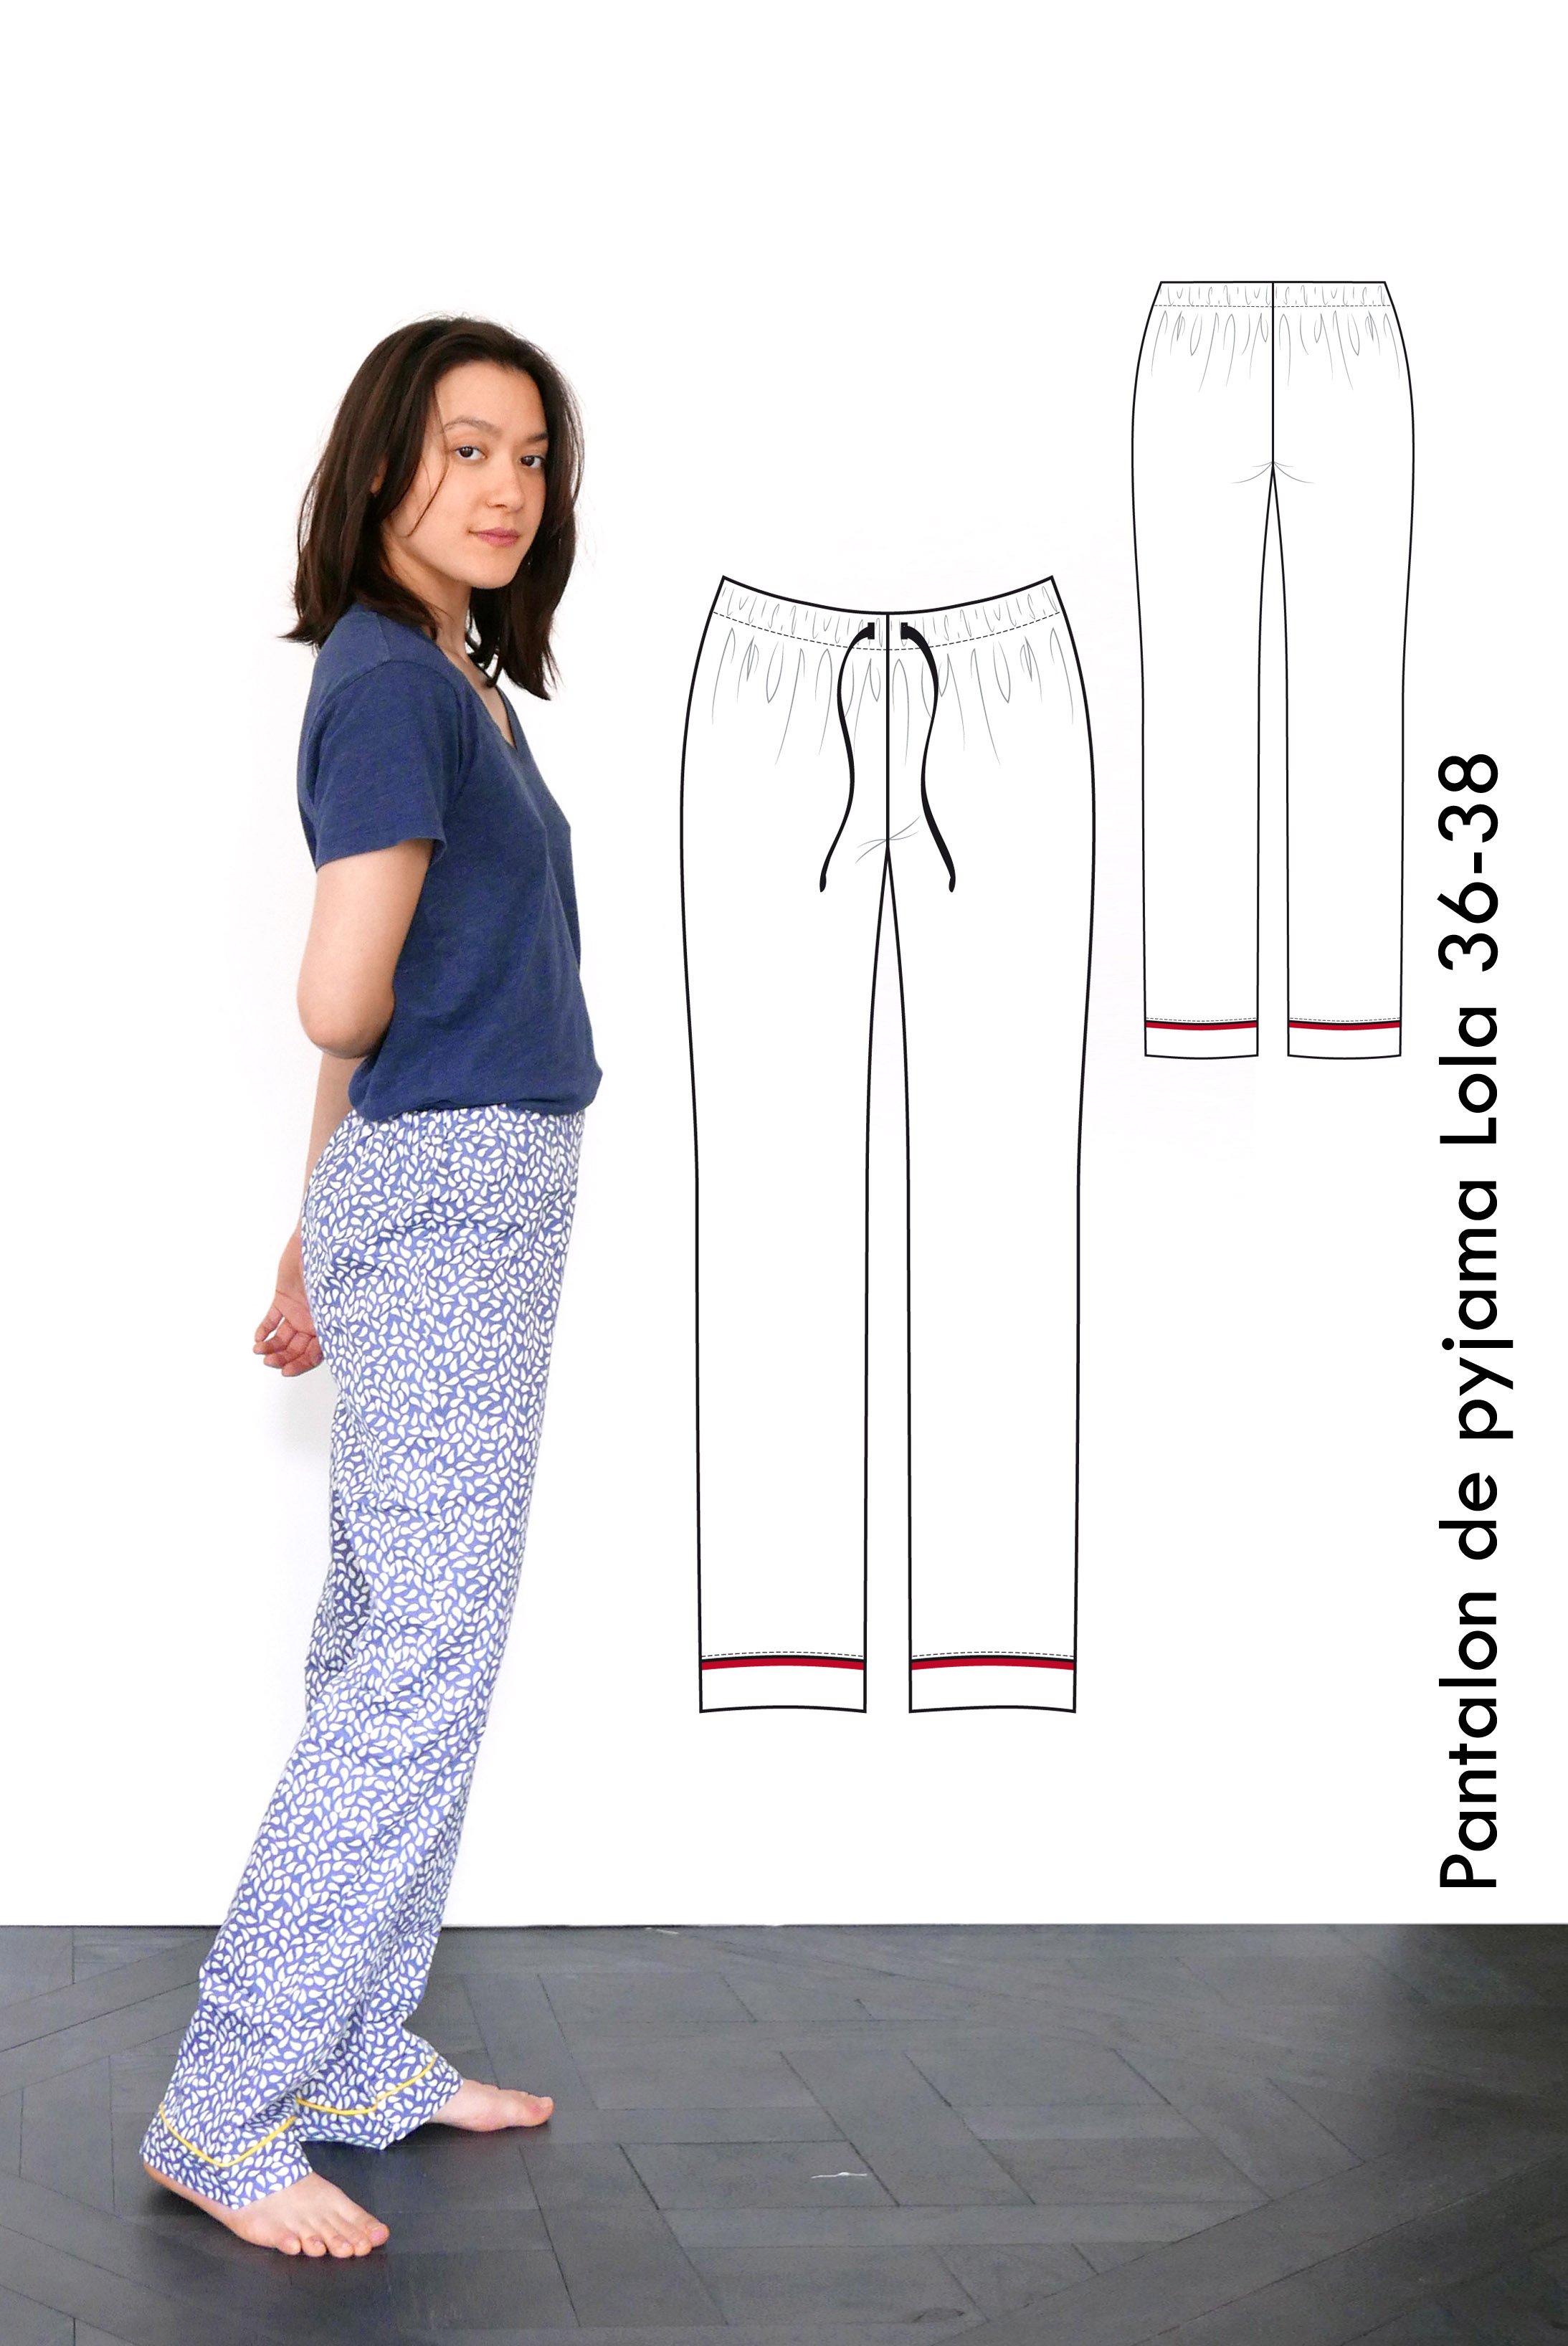 Relaxed jersey pants Leo, yoga pants, pyjama pants - M-L   US size 8-10    UK 10-12 - sewing pattern A4 + US letter 7f8777ae10db